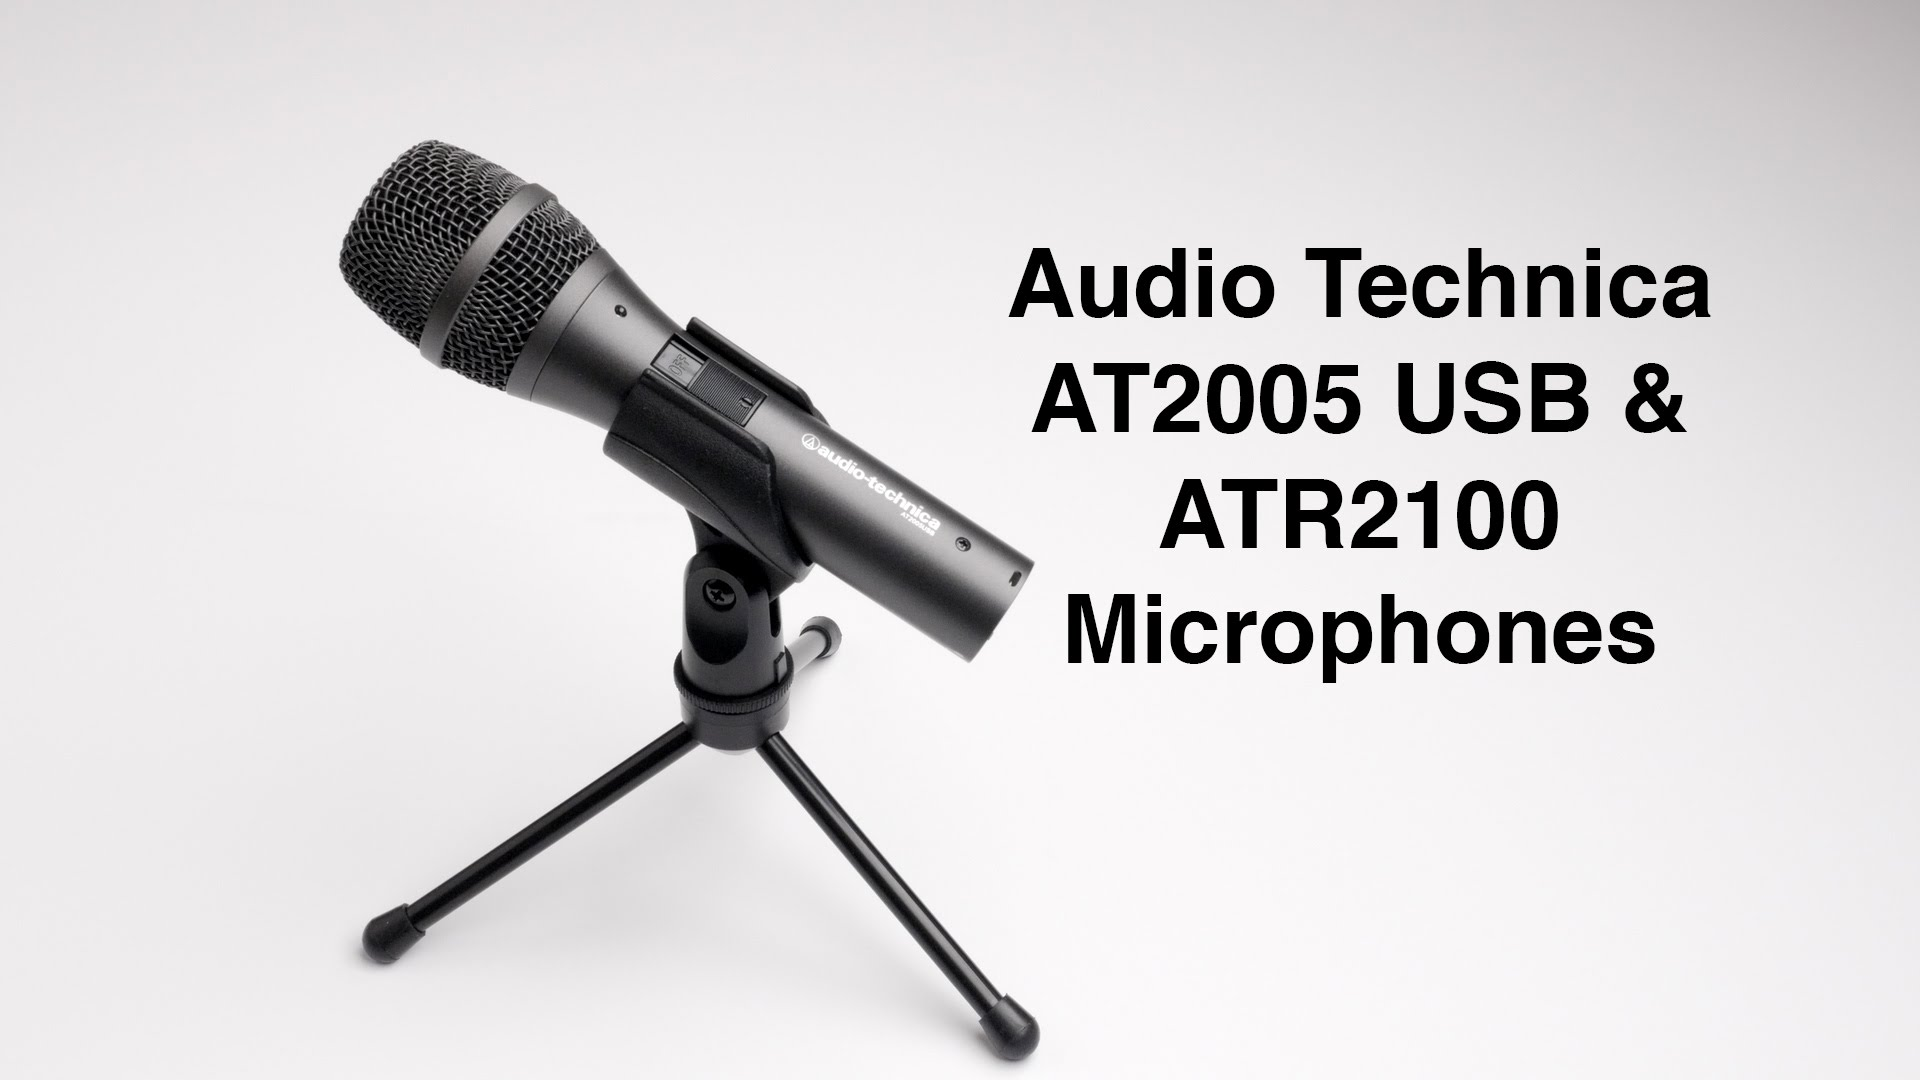 audio technica at2005usb starter microphone for voice over review. Black Bedroom Furniture Sets. Home Design Ideas